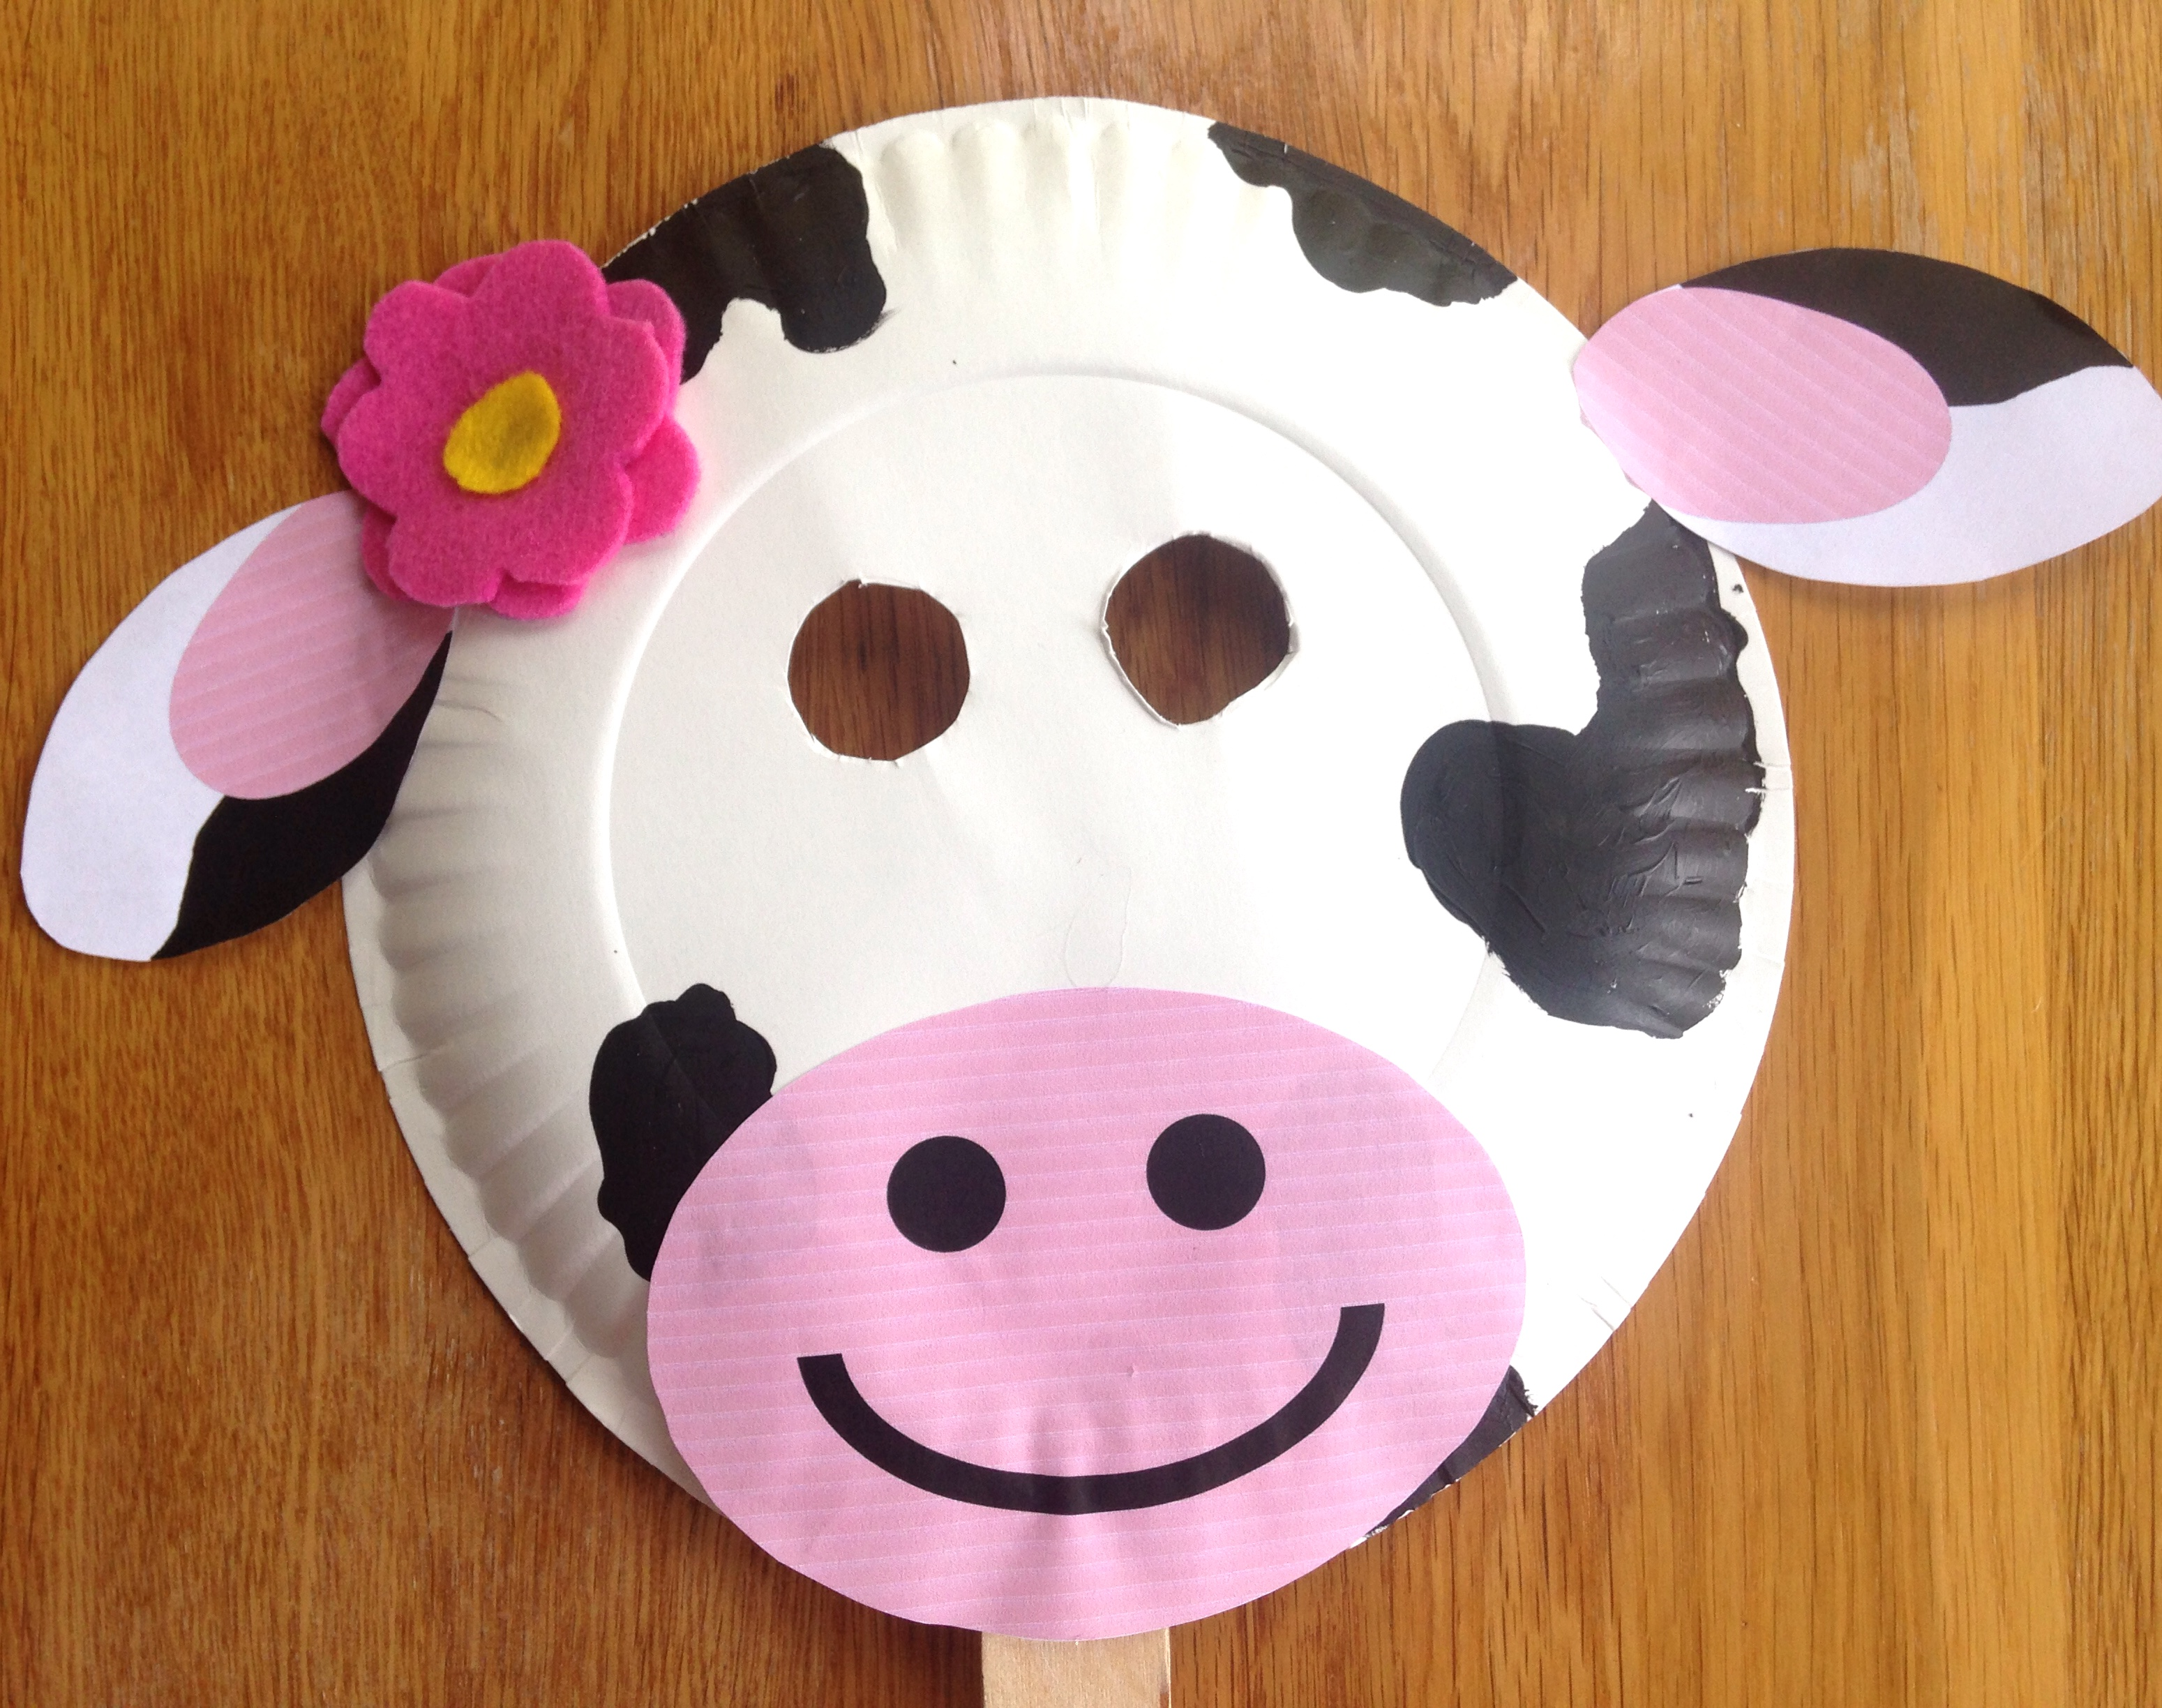 Paper Plate Cow Mask & C Is For Cow Paper Plate Cow Mask